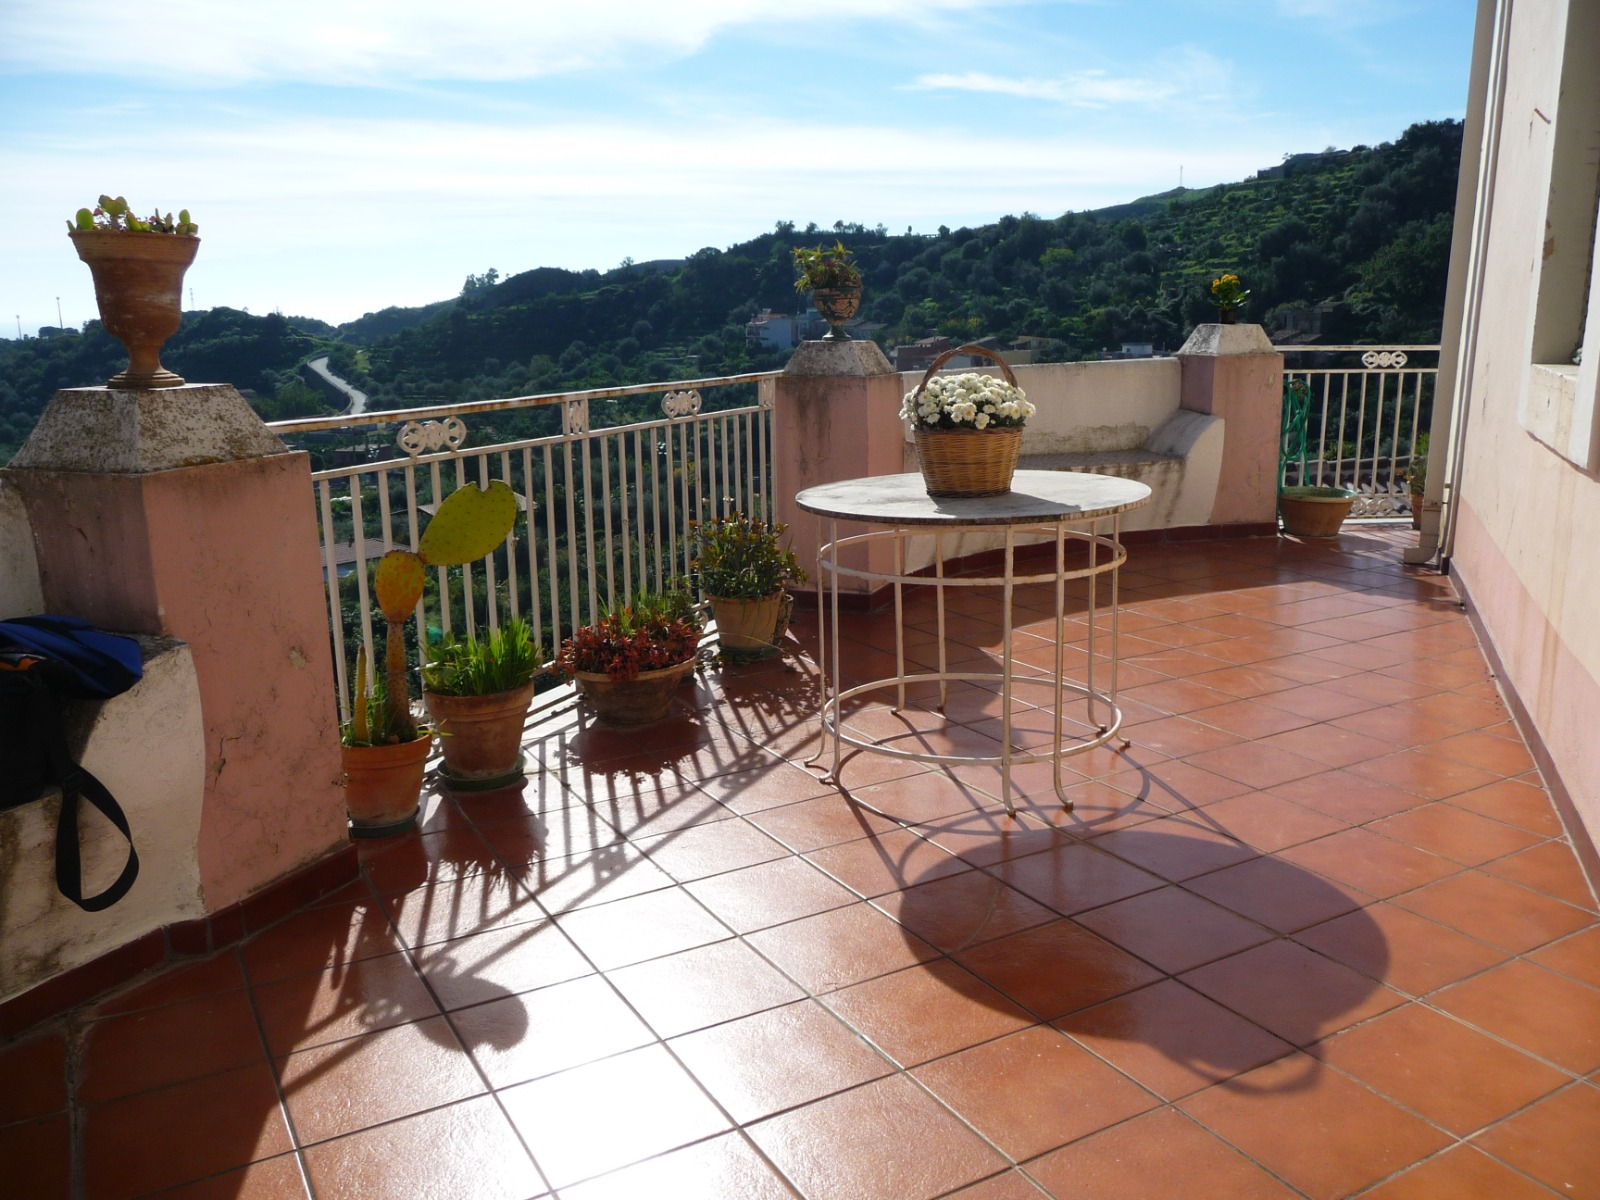 Pretty Detached House in Roccalumera with stunning seaviews (Near Taormina), Sicily (Currently under offer)